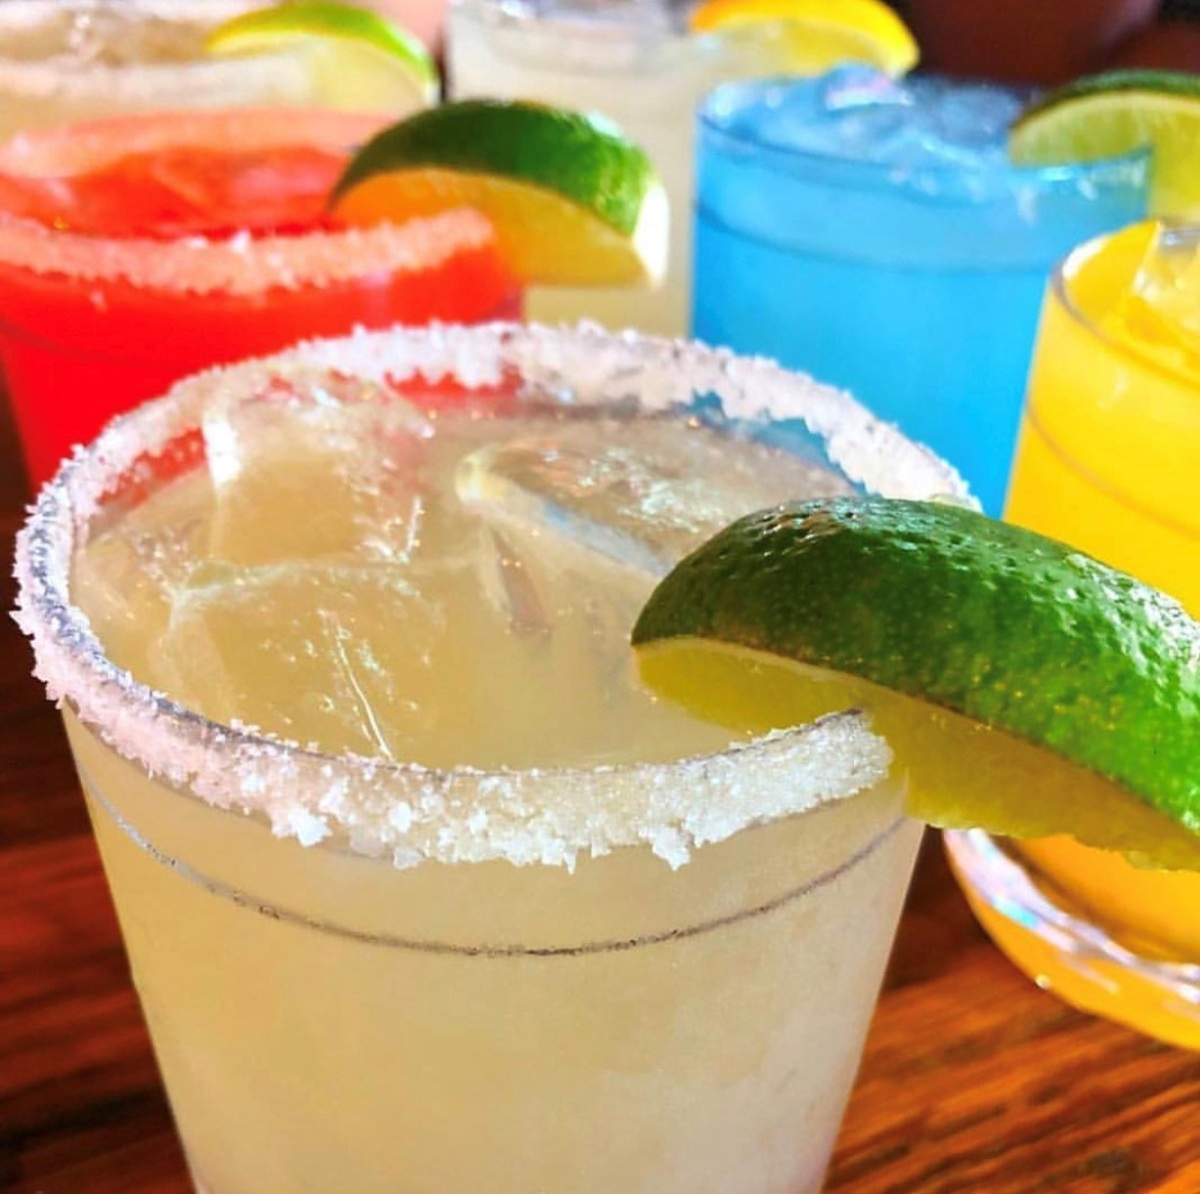 Mission in Navy Yard, Dupont Circle offer Margarita Day specials